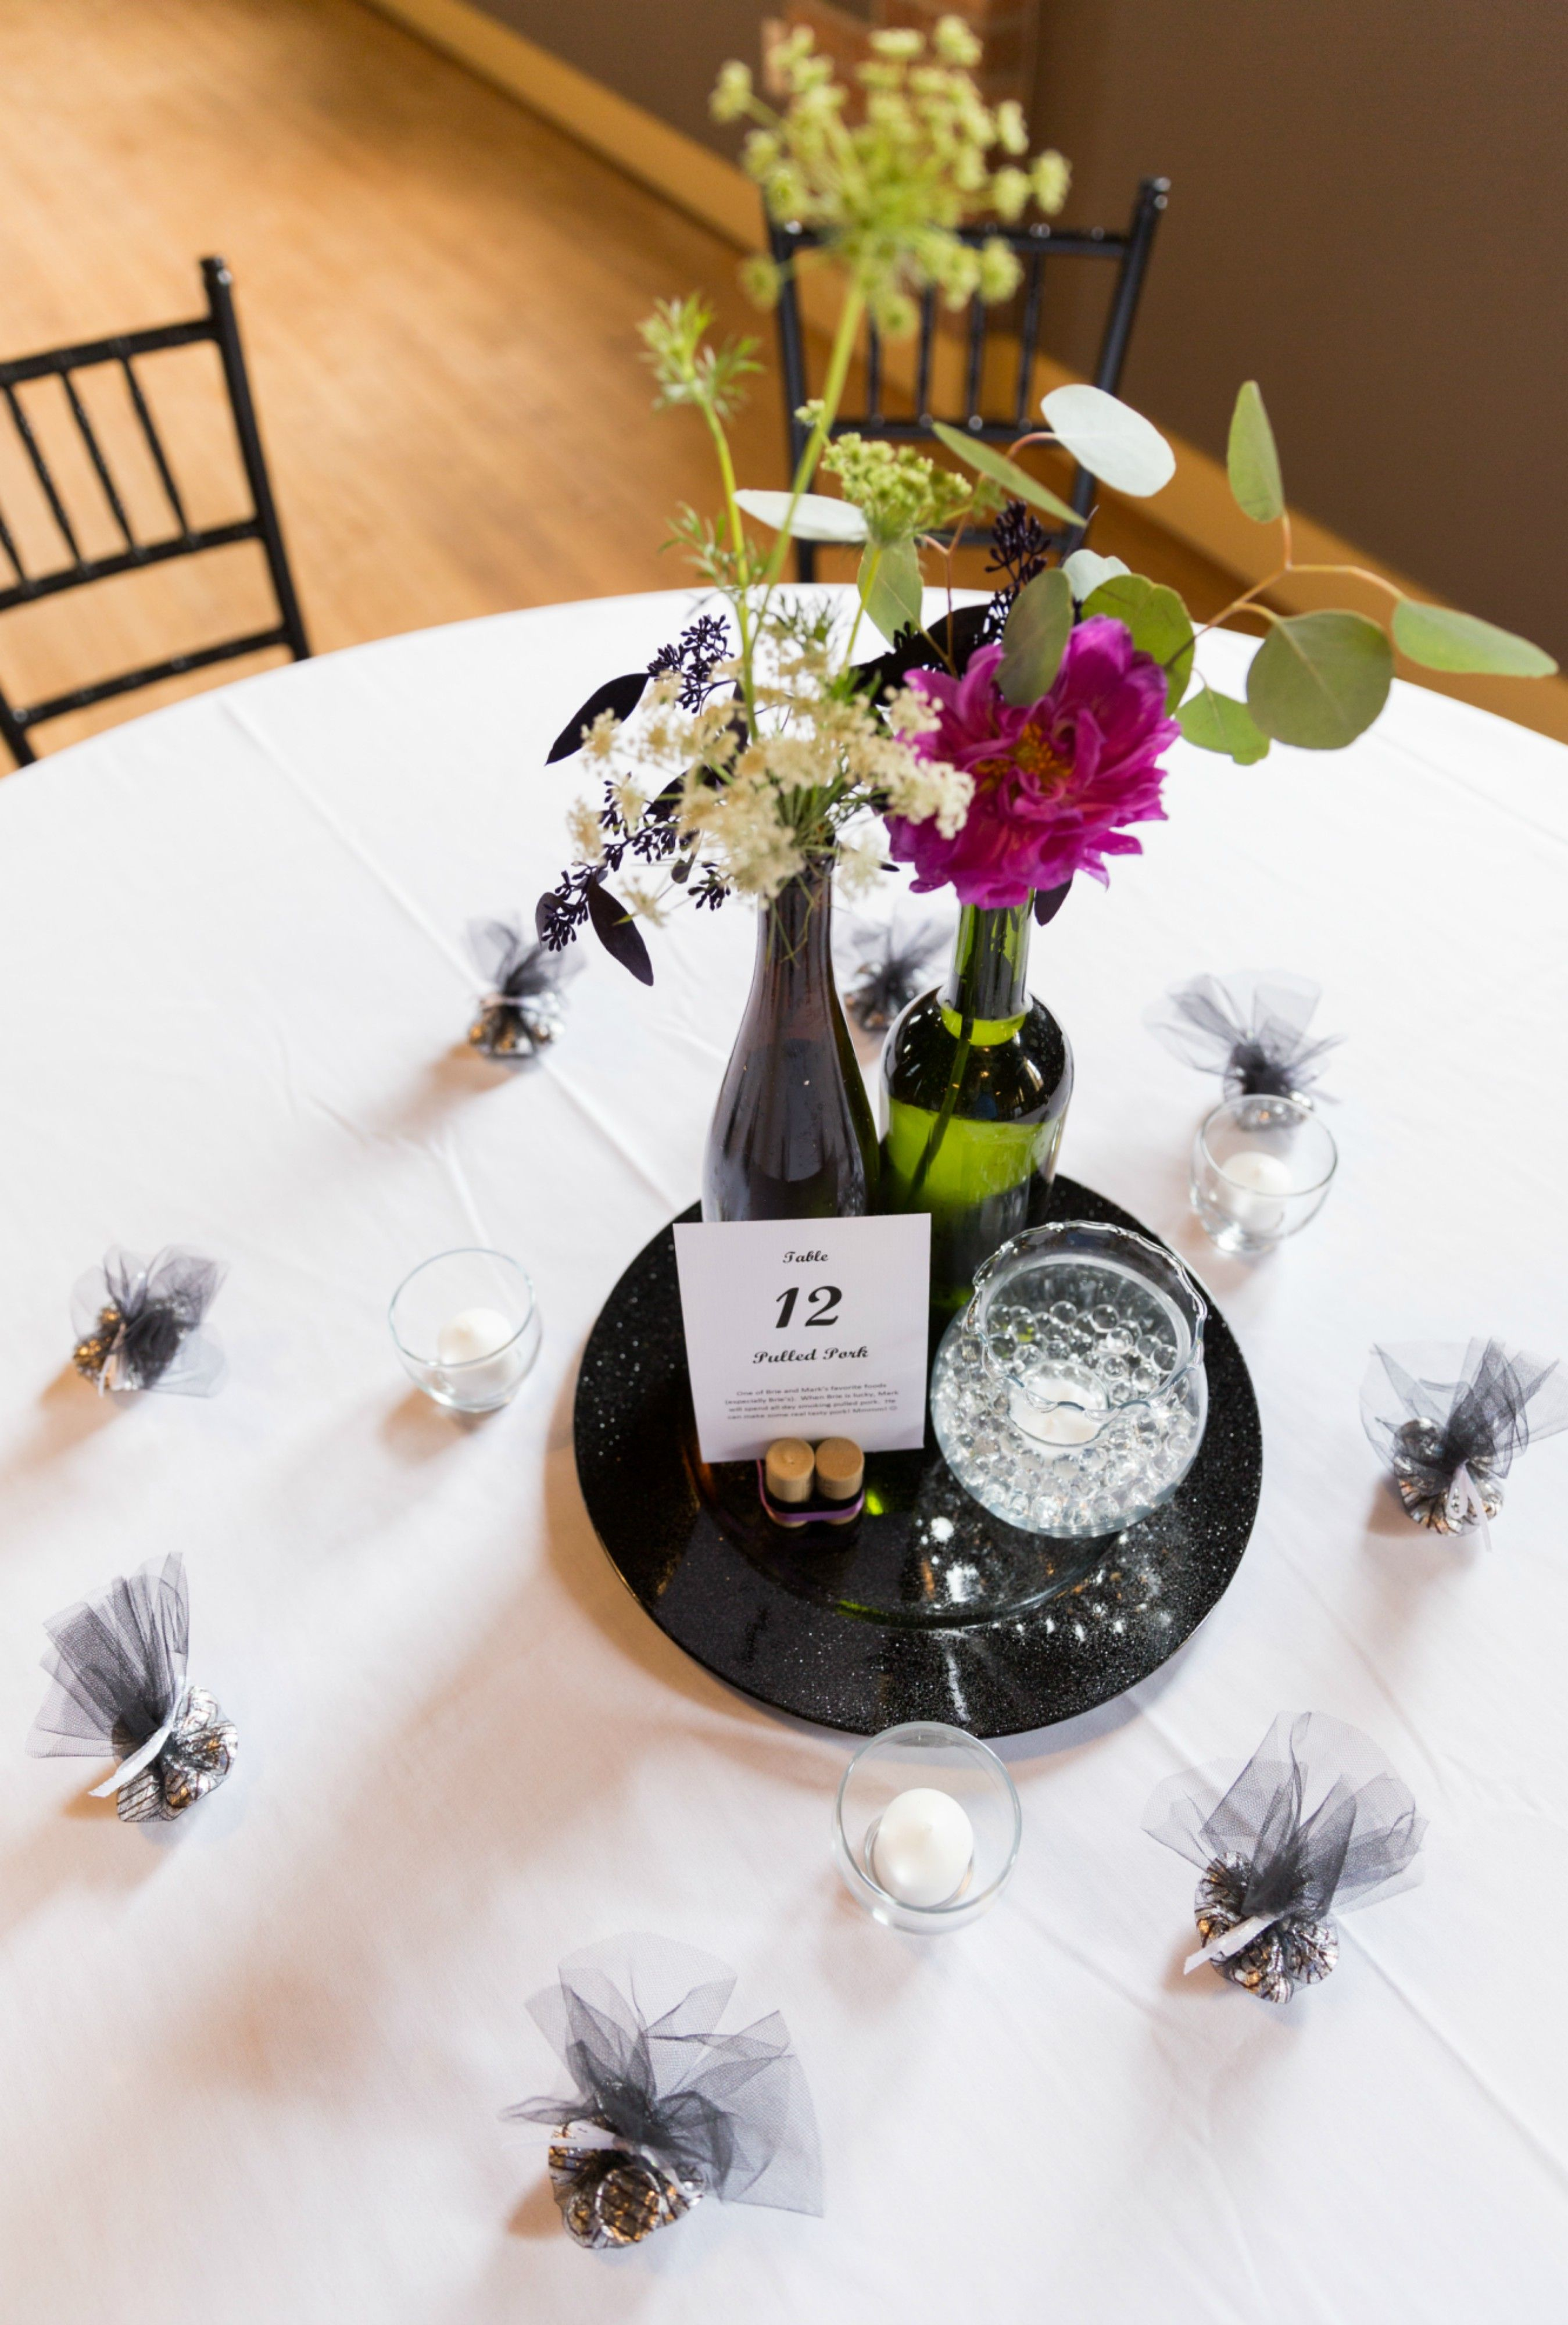 wedding centerpieces fake flowers%0A Easy  Elegant  Rustic Wine Bottle Centerpiece for Weddings  save money by  providing your